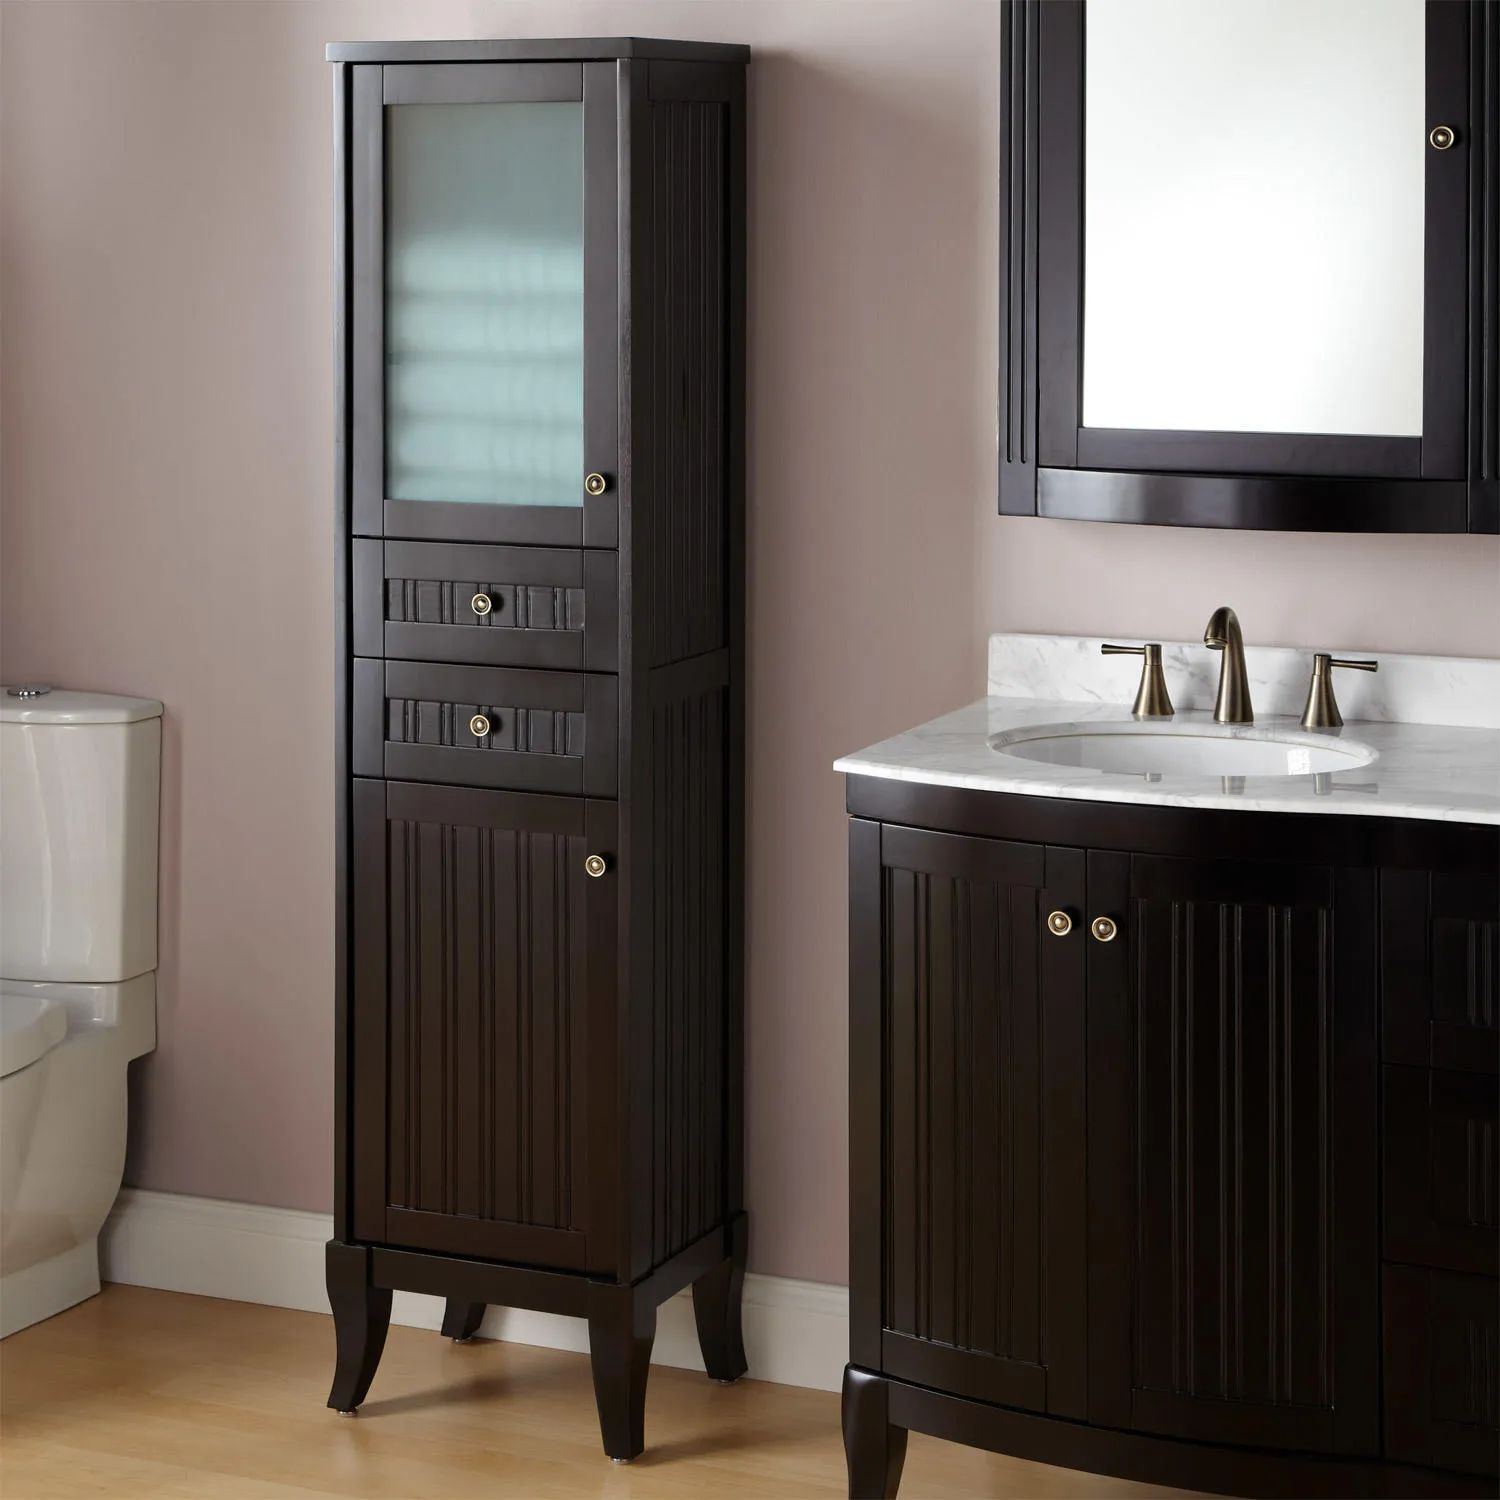 Palmetto bathroom linen storage cabinet